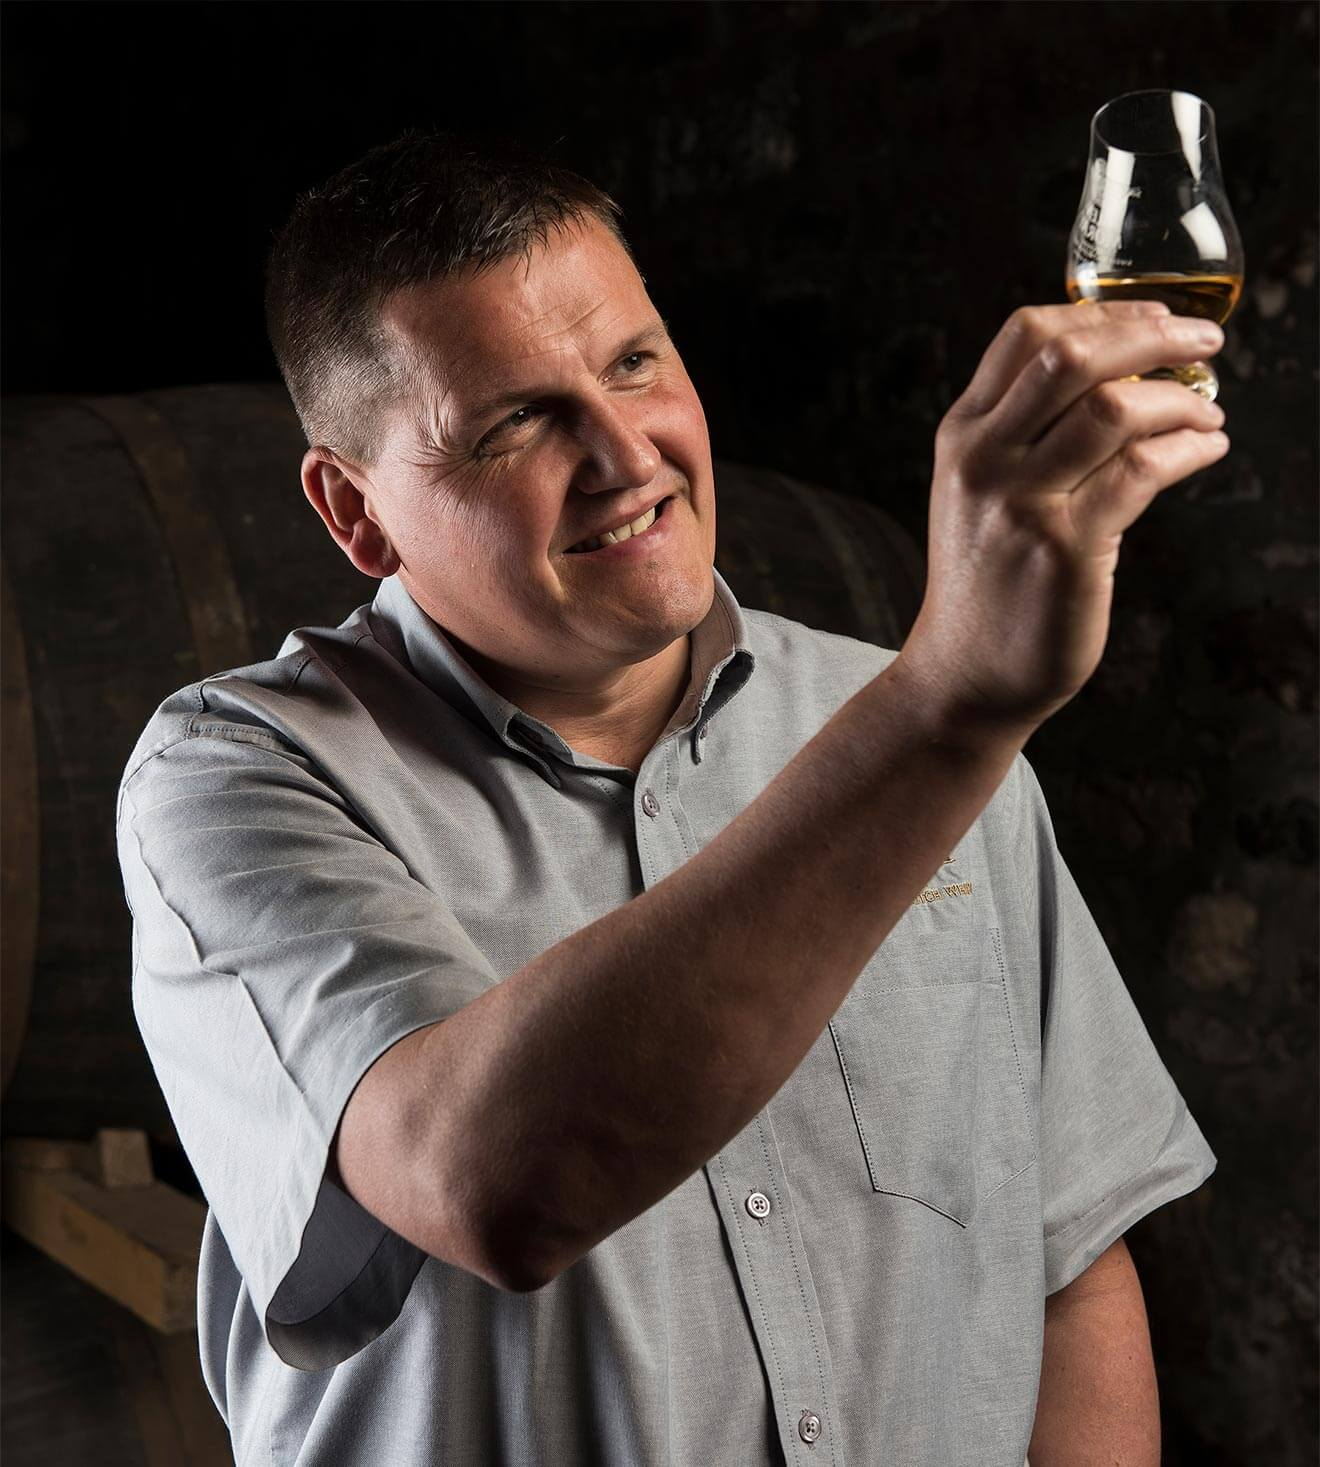 Graham Coull, master distiller, glen moray distillery